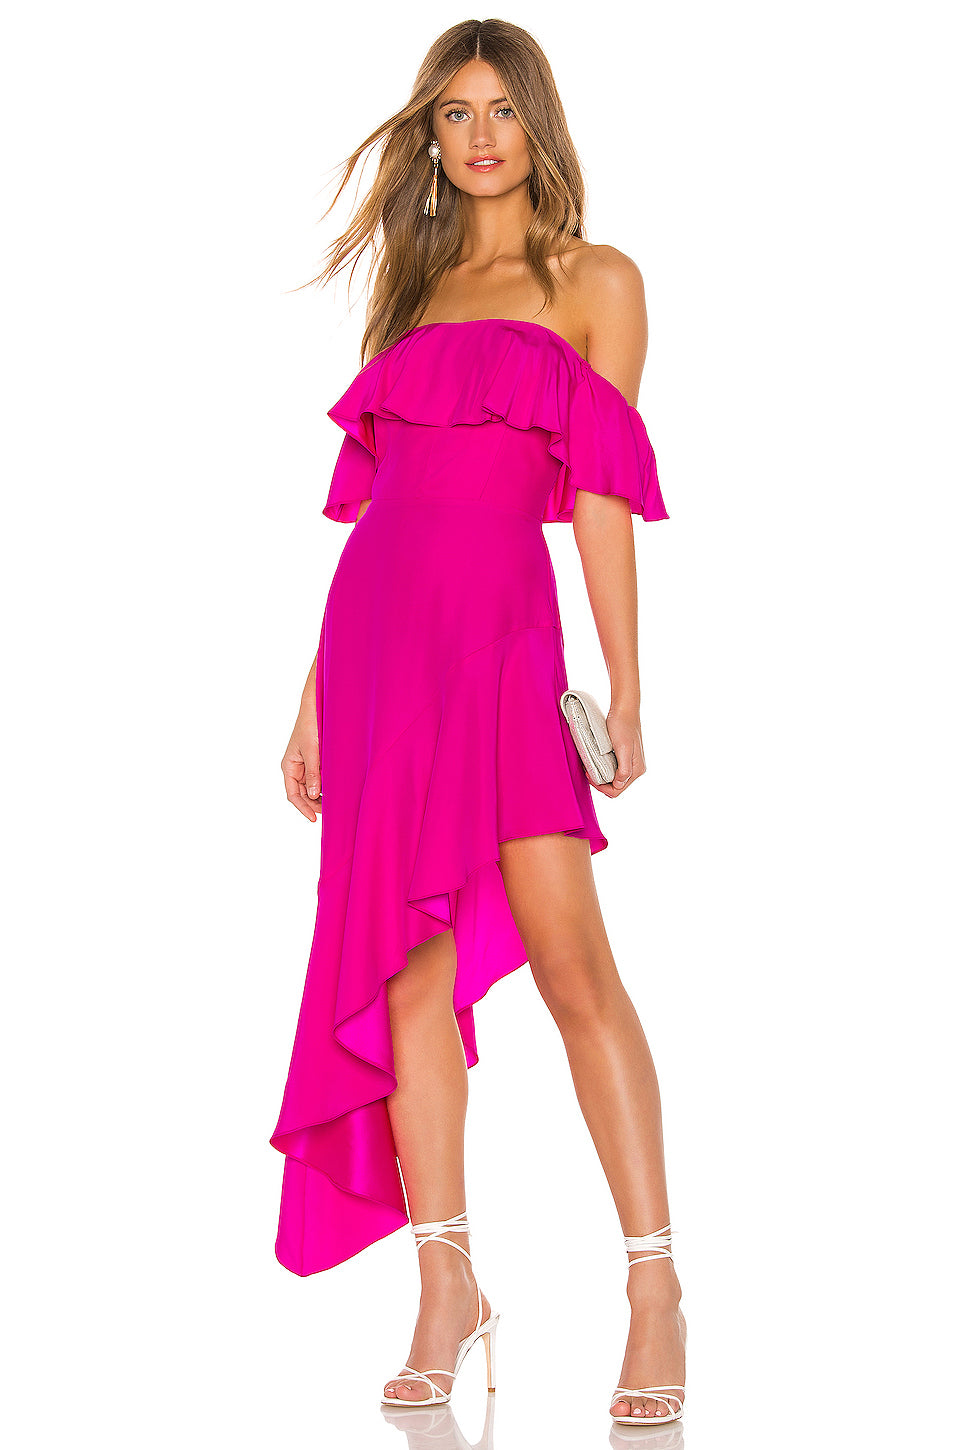 Camellia Maxi Dress in Hot Pink Light